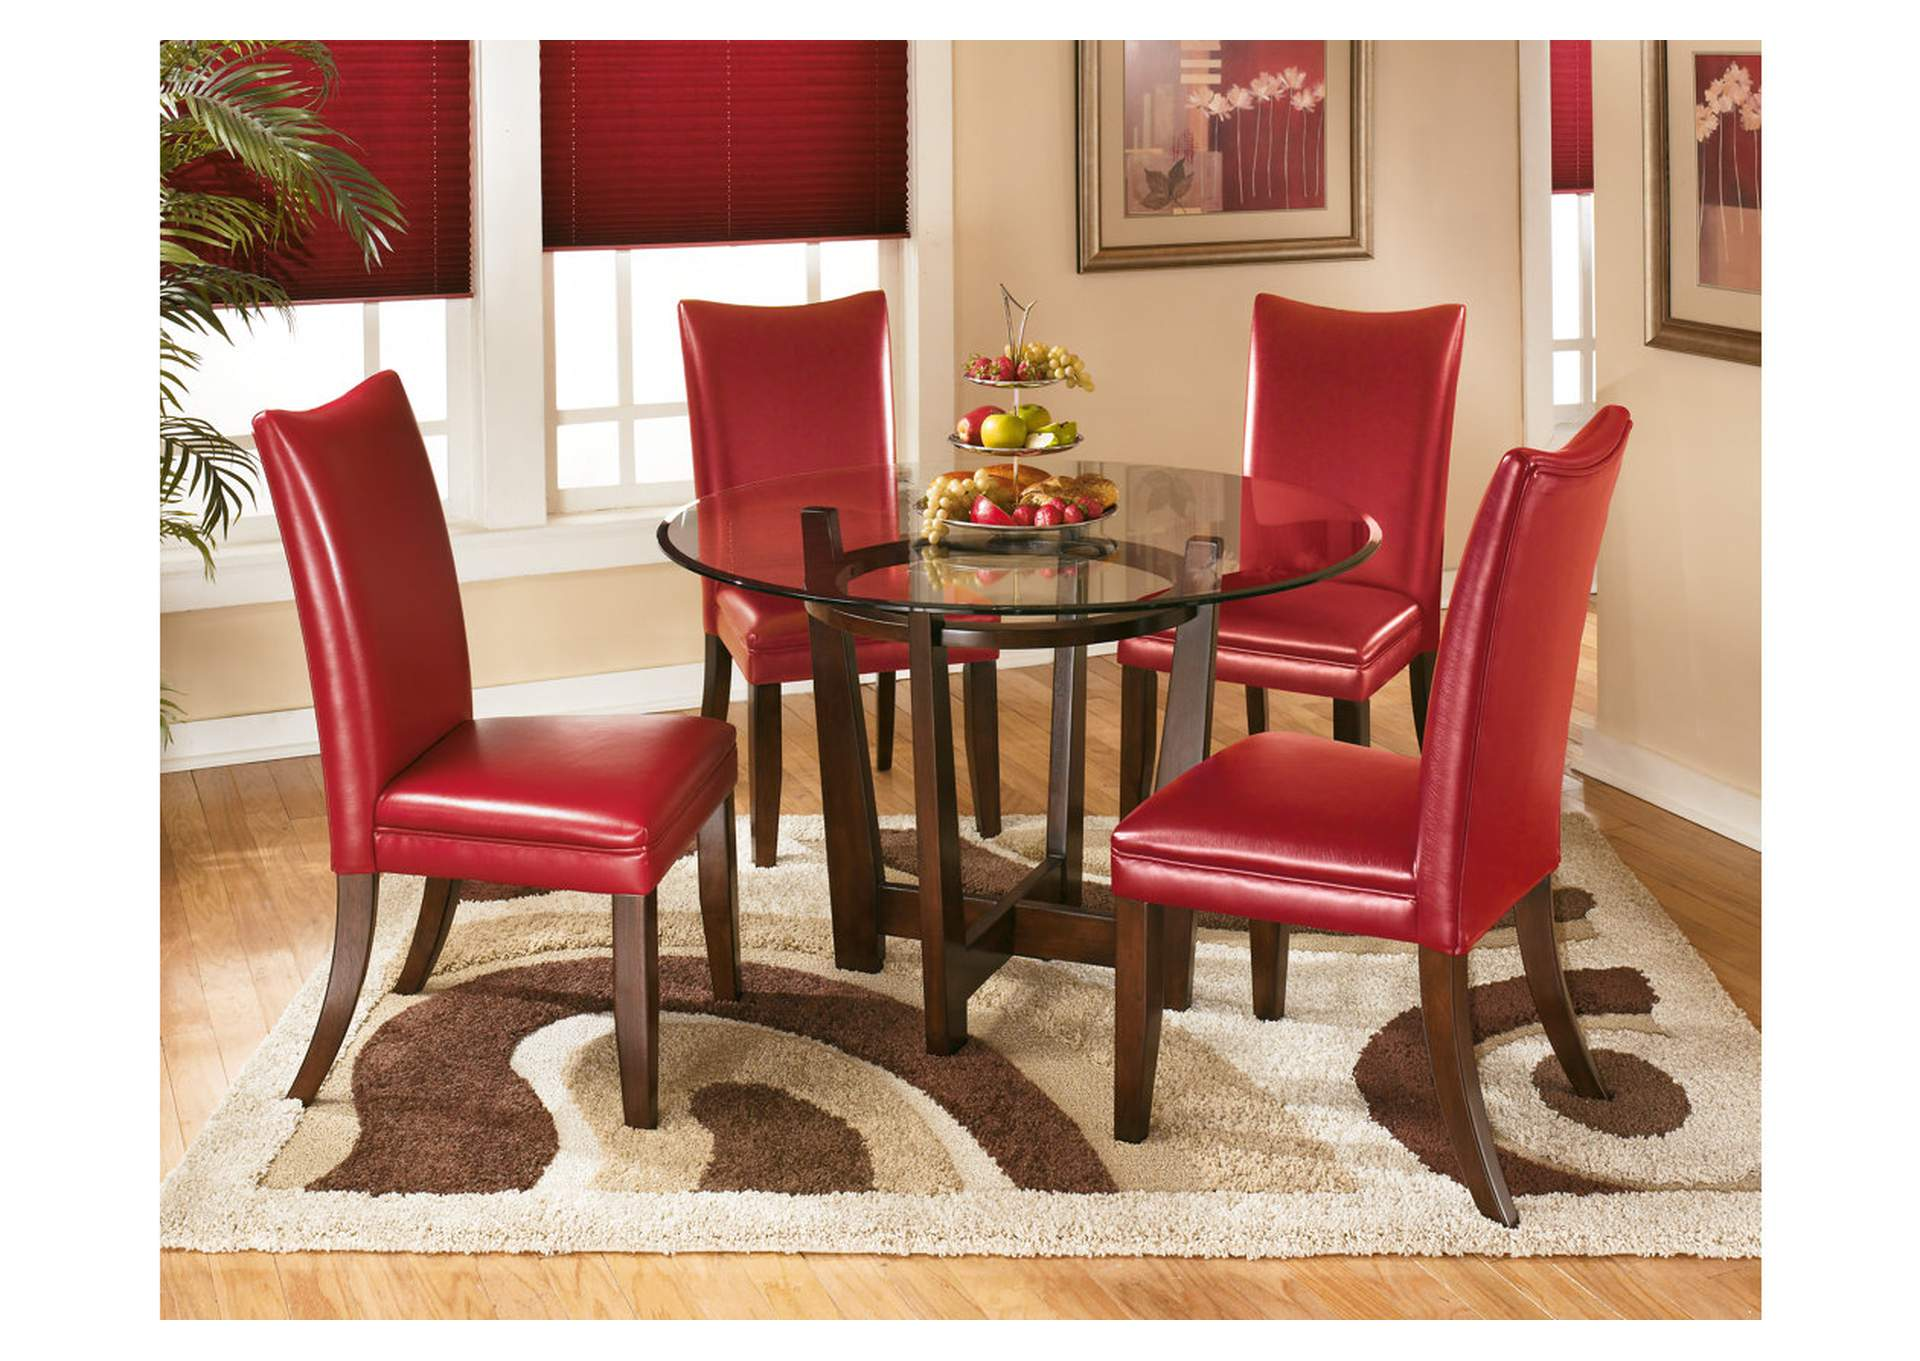 American Furniture Design Charell Round Dining Table W 4